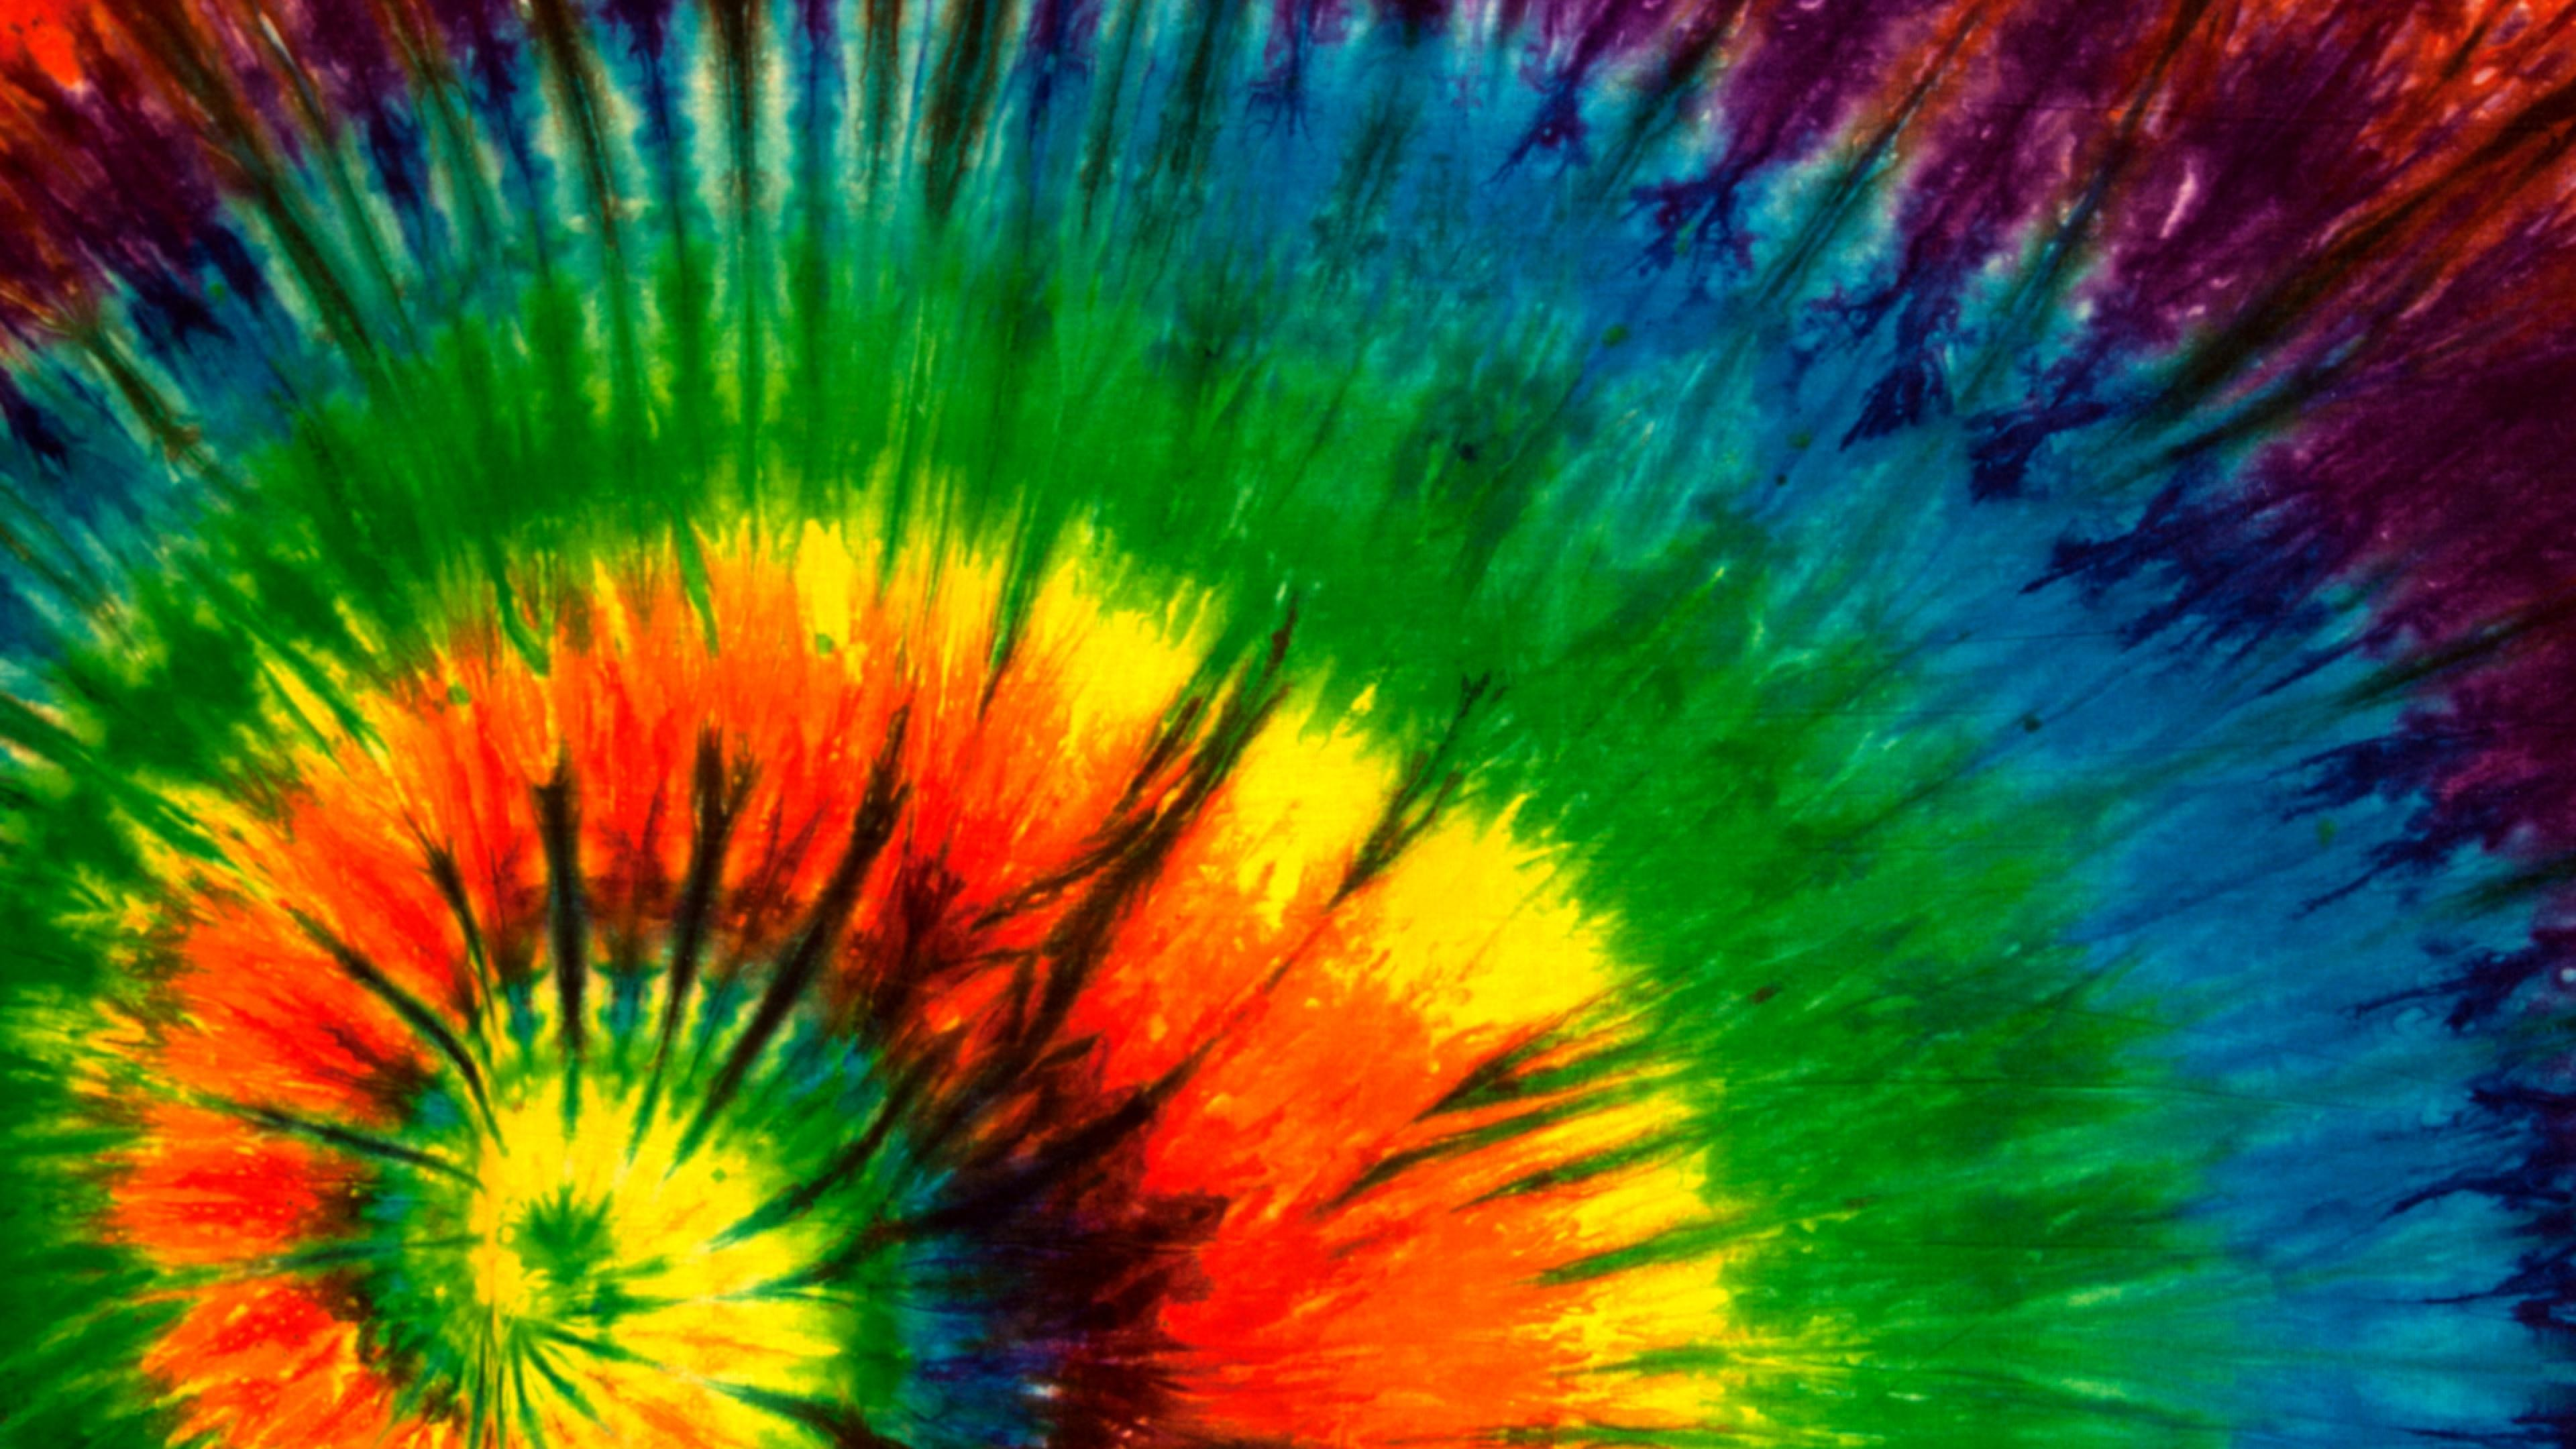 tie dye wallpaper  u00b7 u2460 download free high resolution